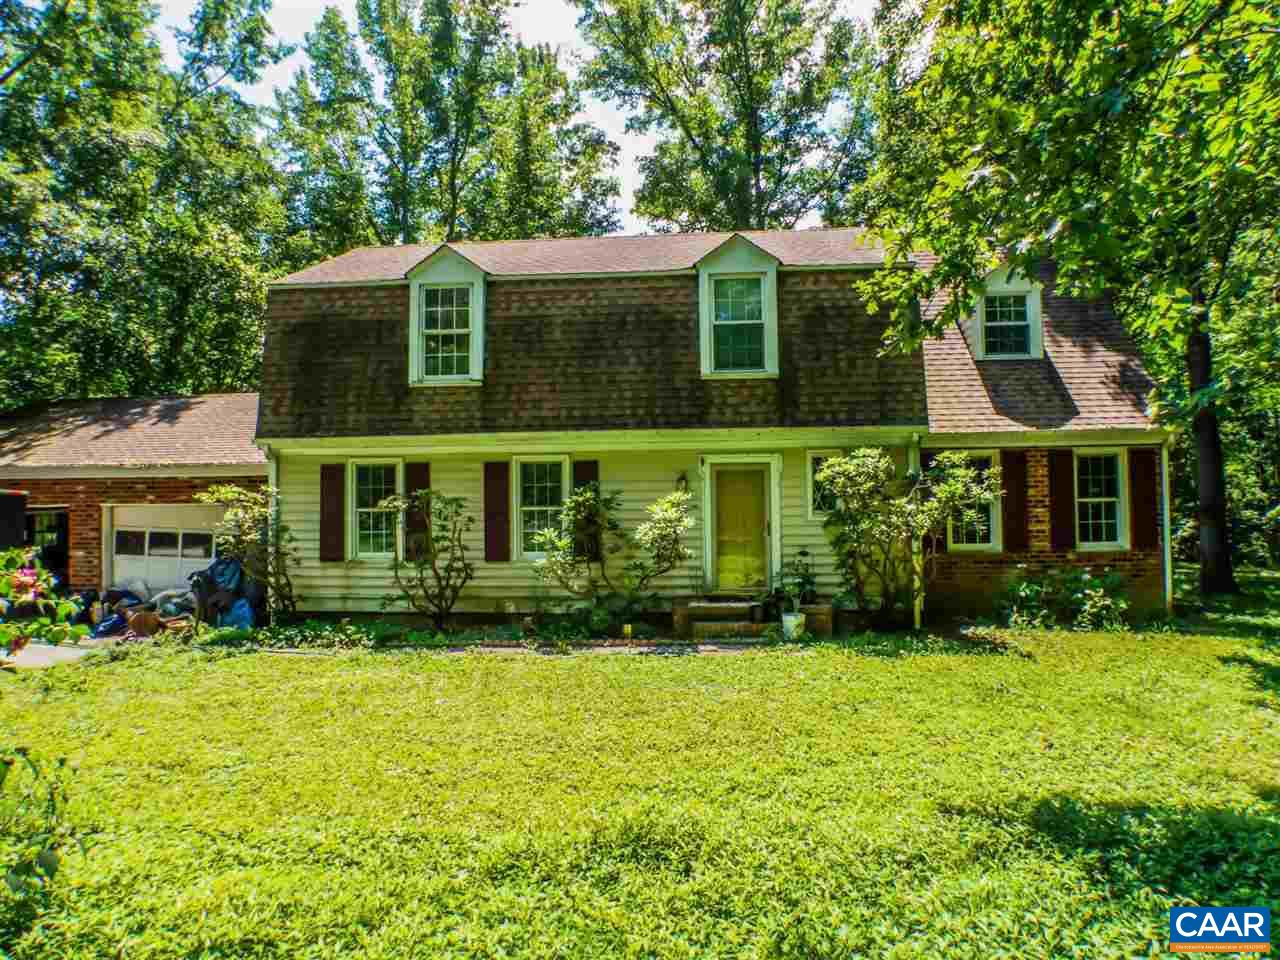 home for sale , MLS #592930, 411 Copper Line Rd